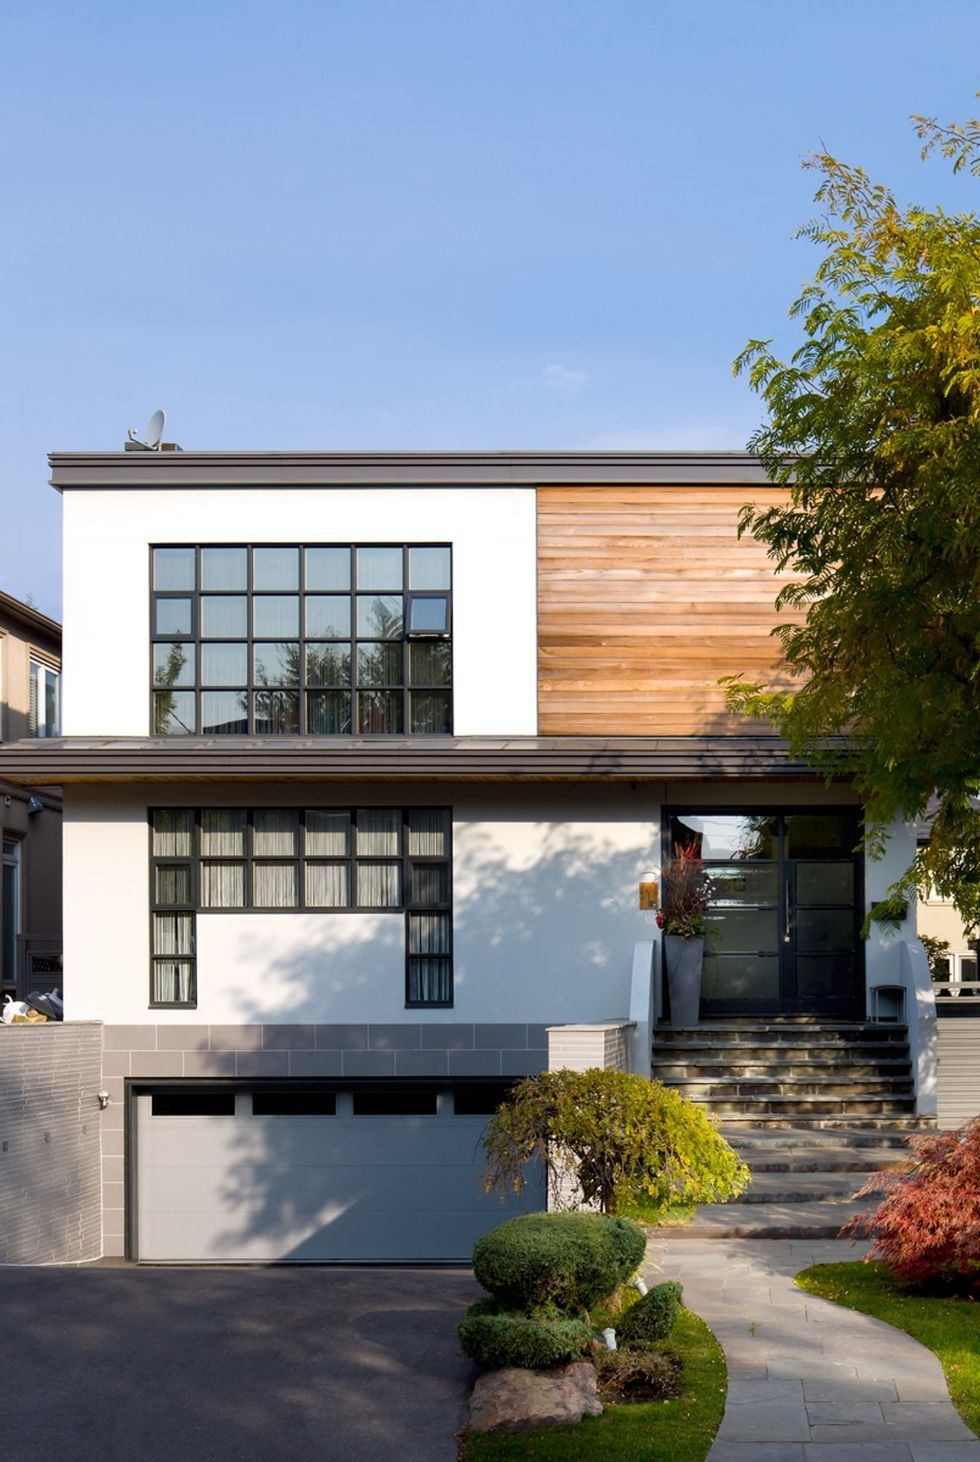 49 Most Popular Modern Dream House Exterior Design Ideas 3 In 2020: Striking Must-See Photos Of Modern U.S. Home Exteriors